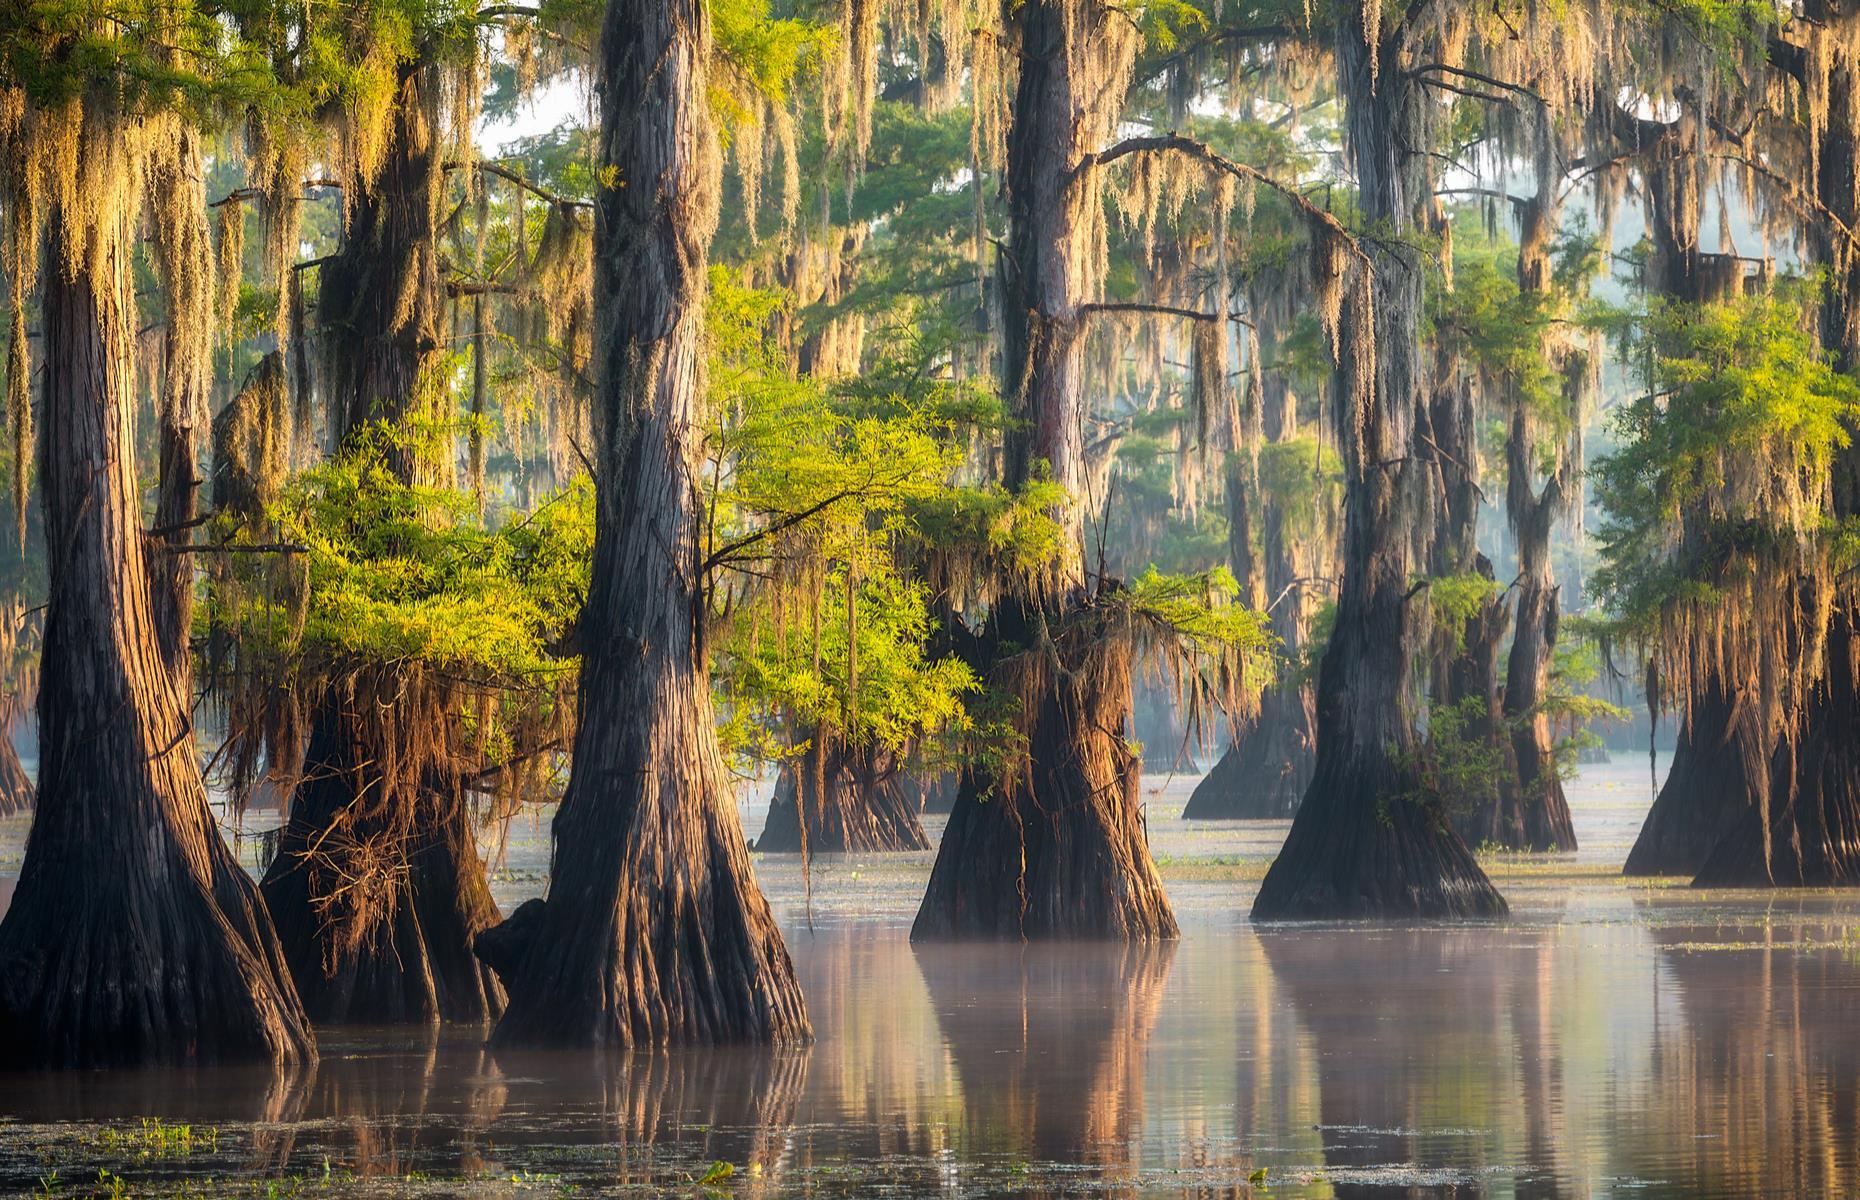 Slide 9 of 32: This tucked-away Texan spot hugs the state's border with Louisiana. It's an ethereal mix of swampy bayous, ponds and cypress trees, which drip with Spanish moss. Their broad, knotted trunks are submerged in the water. Discover more of America's most stunning lakes.